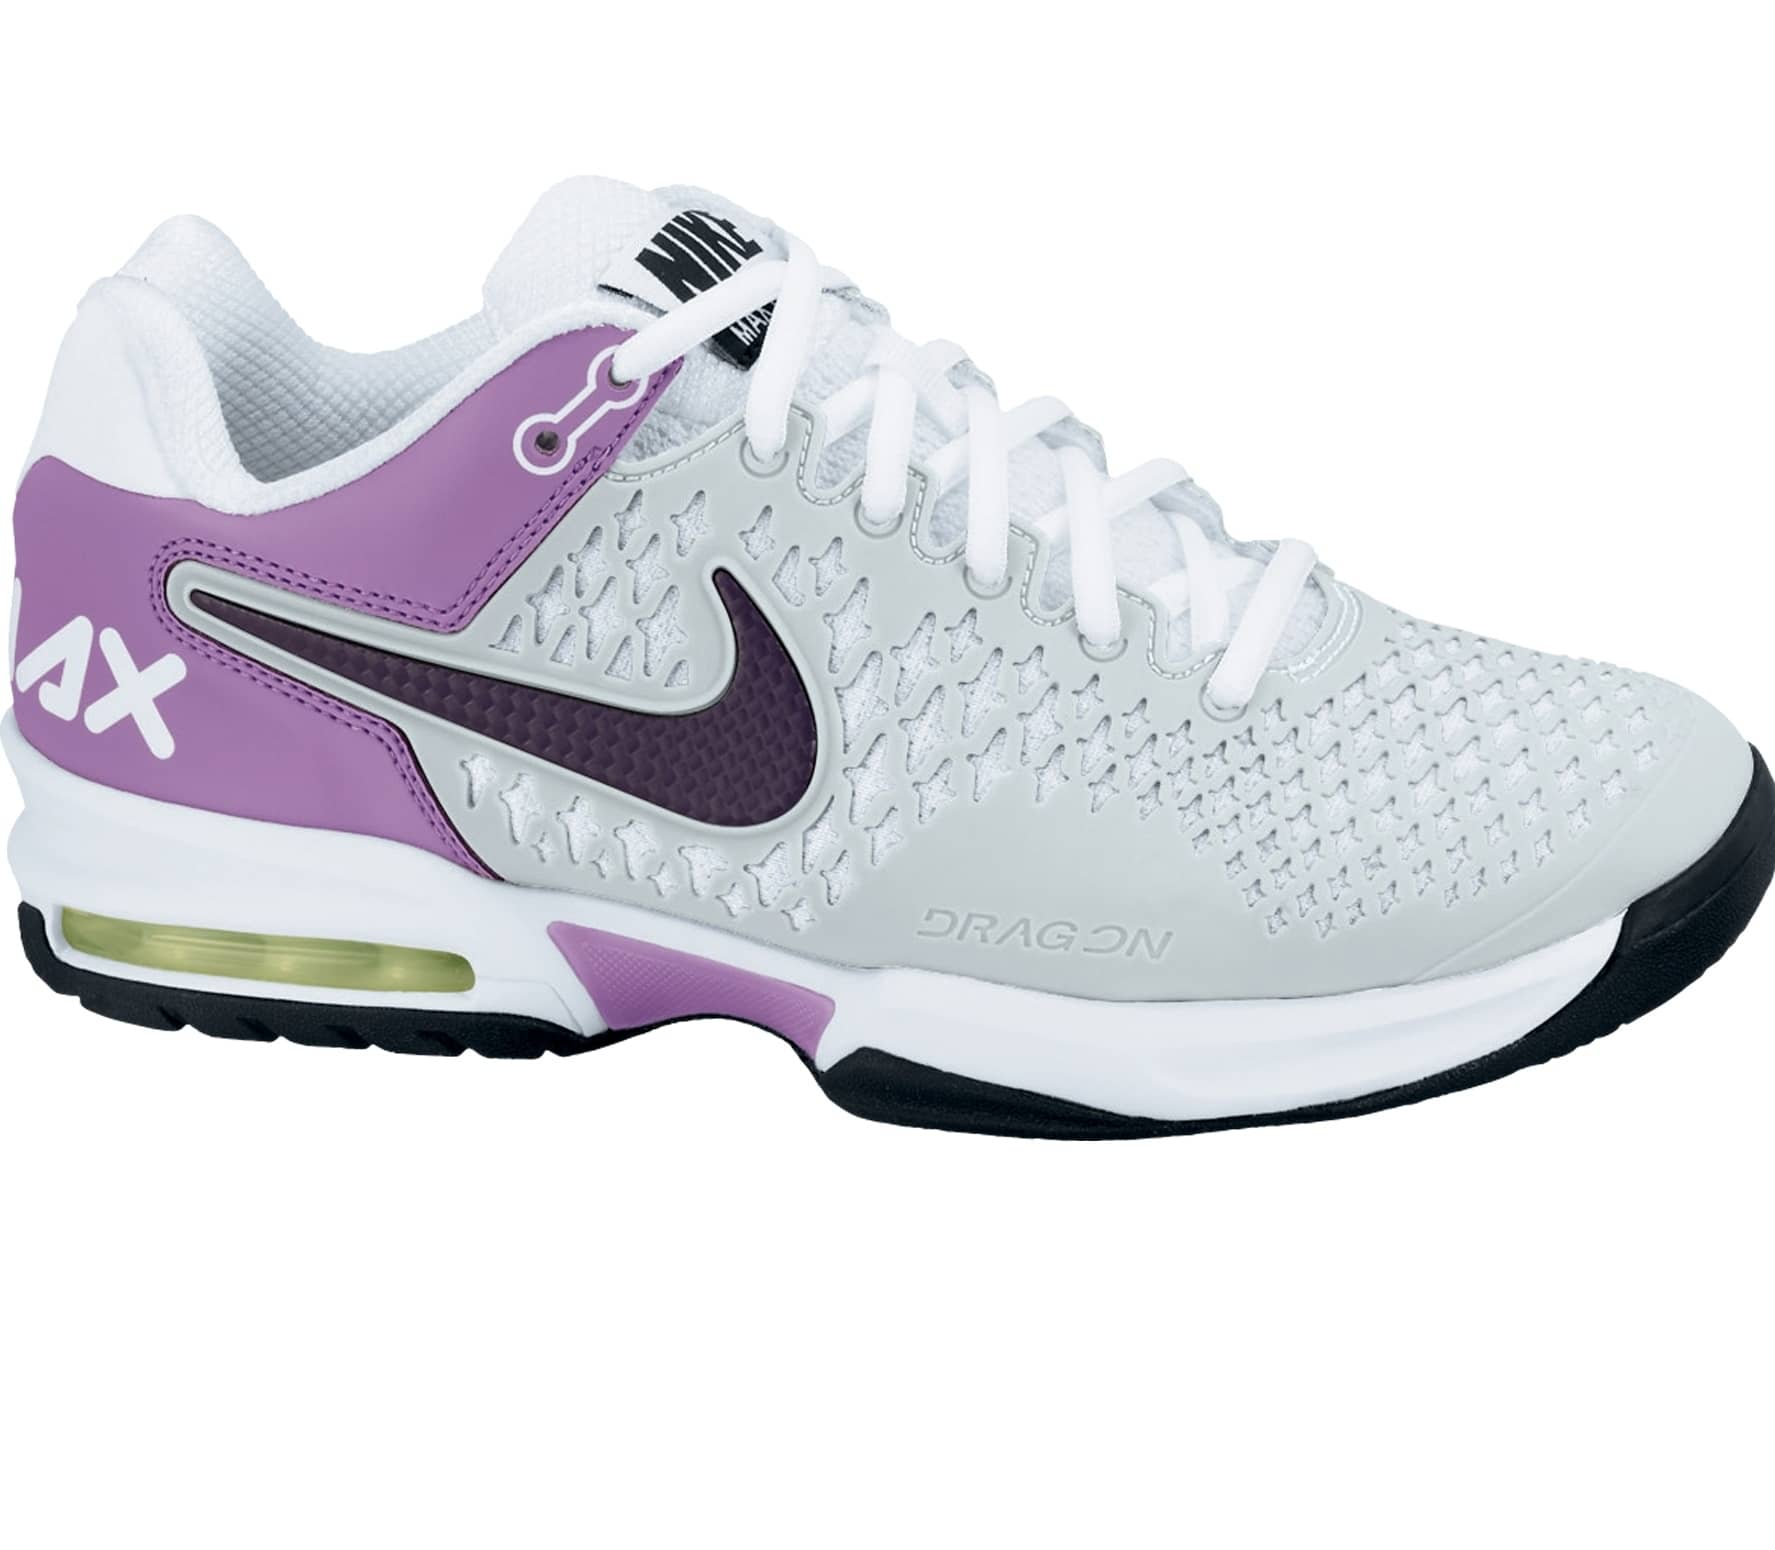 on sale 084b8 298d7 ... get nike zapato de tenis mujer air max cage efe92 74ab3